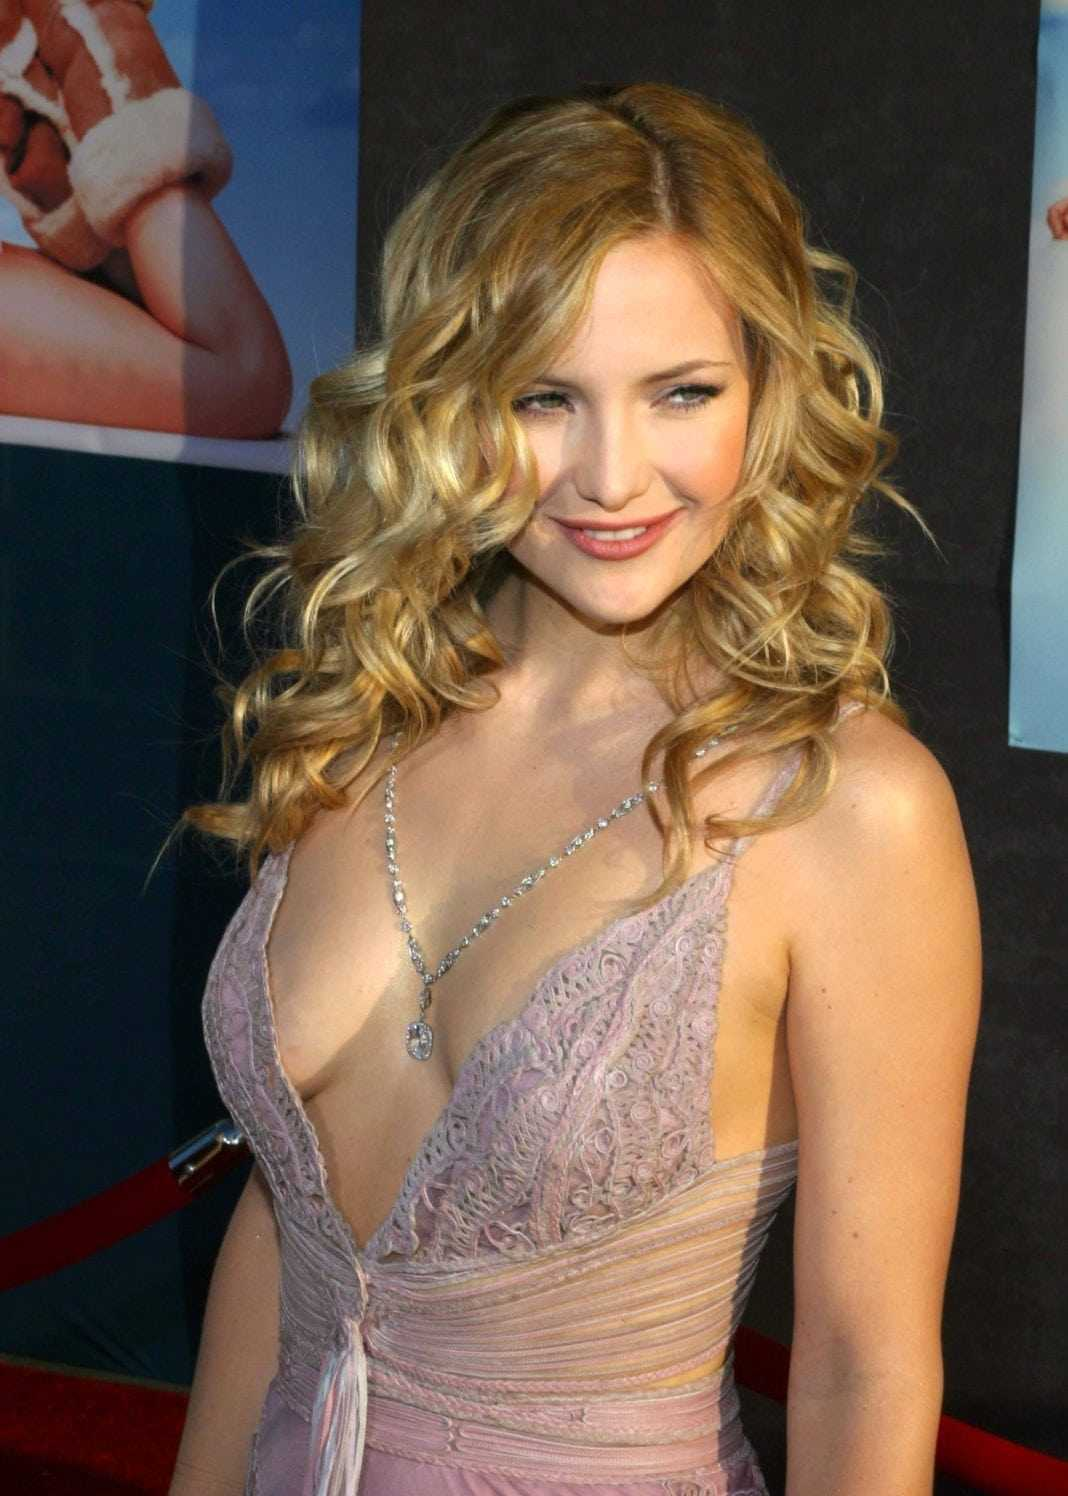 Kate Hudson sexy side boobs pictures